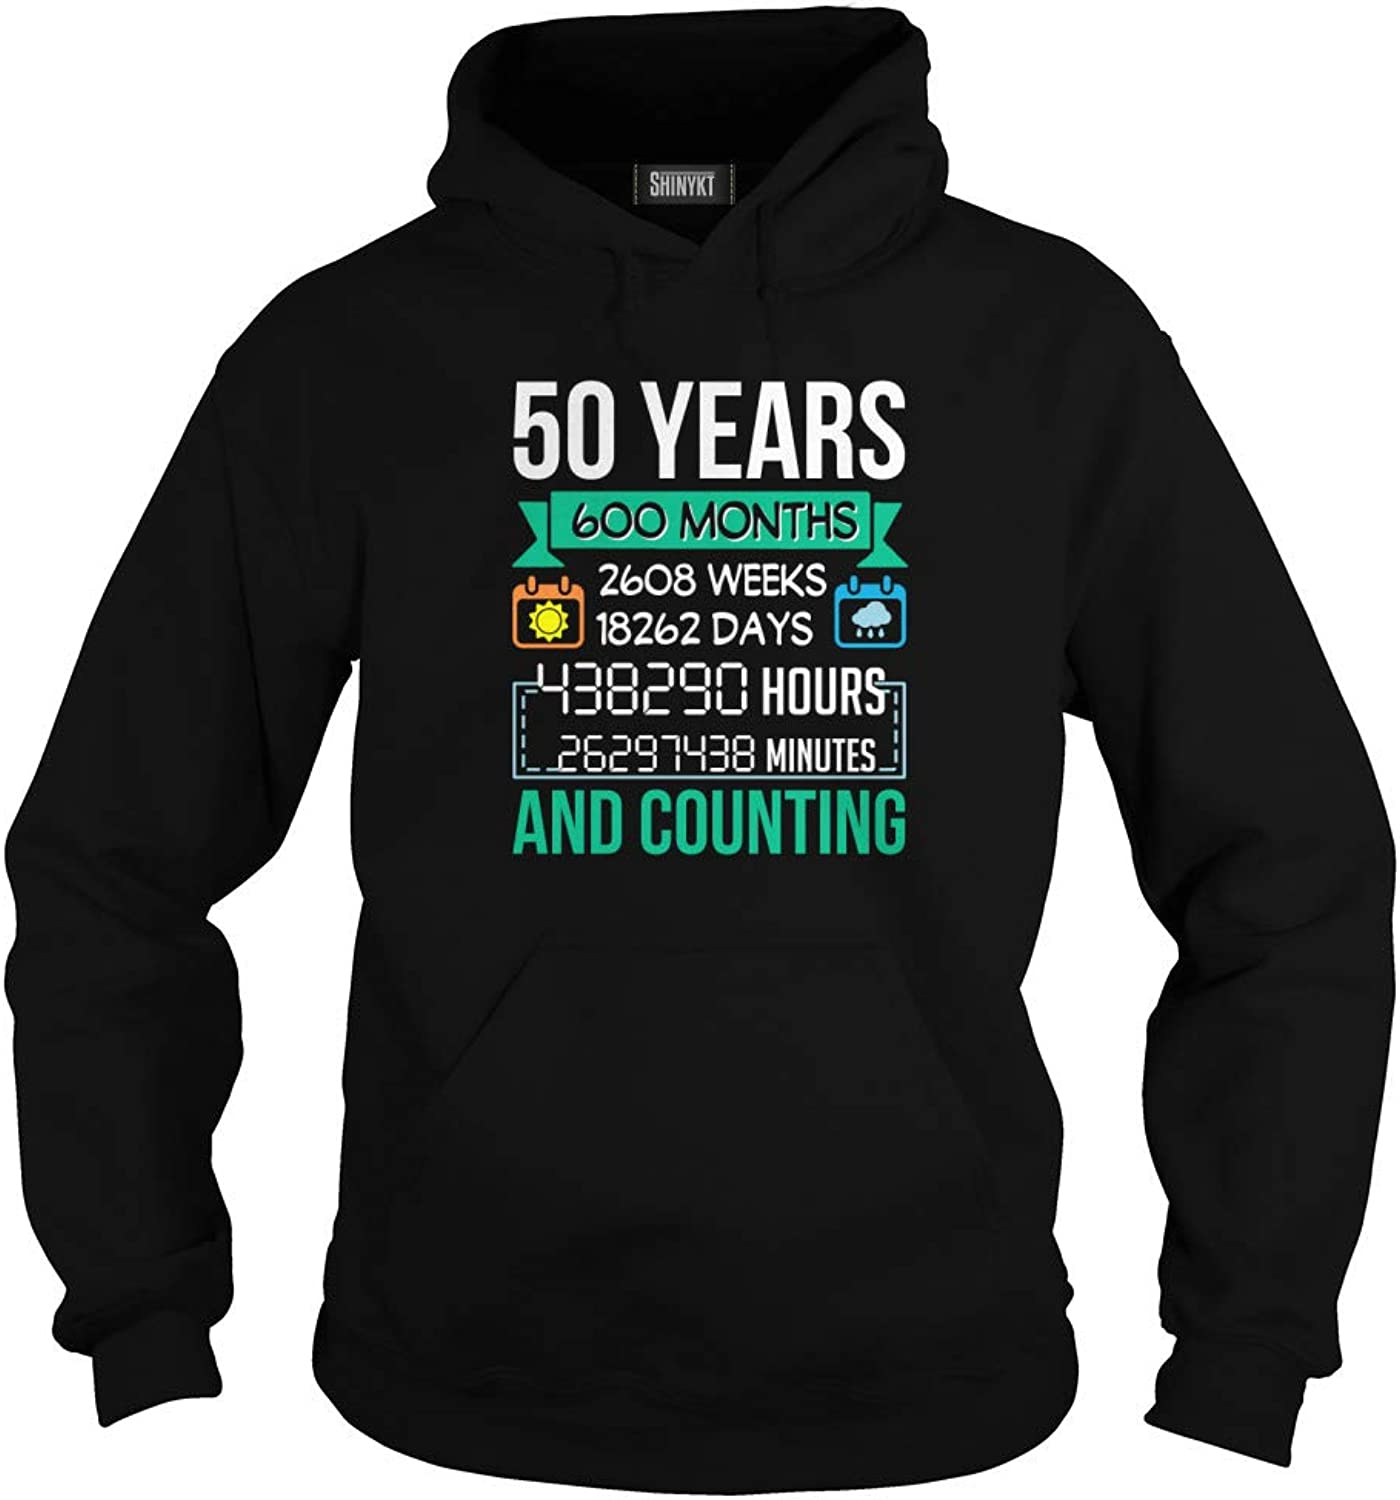 ShinyKT 50 Years 600 Months 2608 Weeks Day Hour and Counting